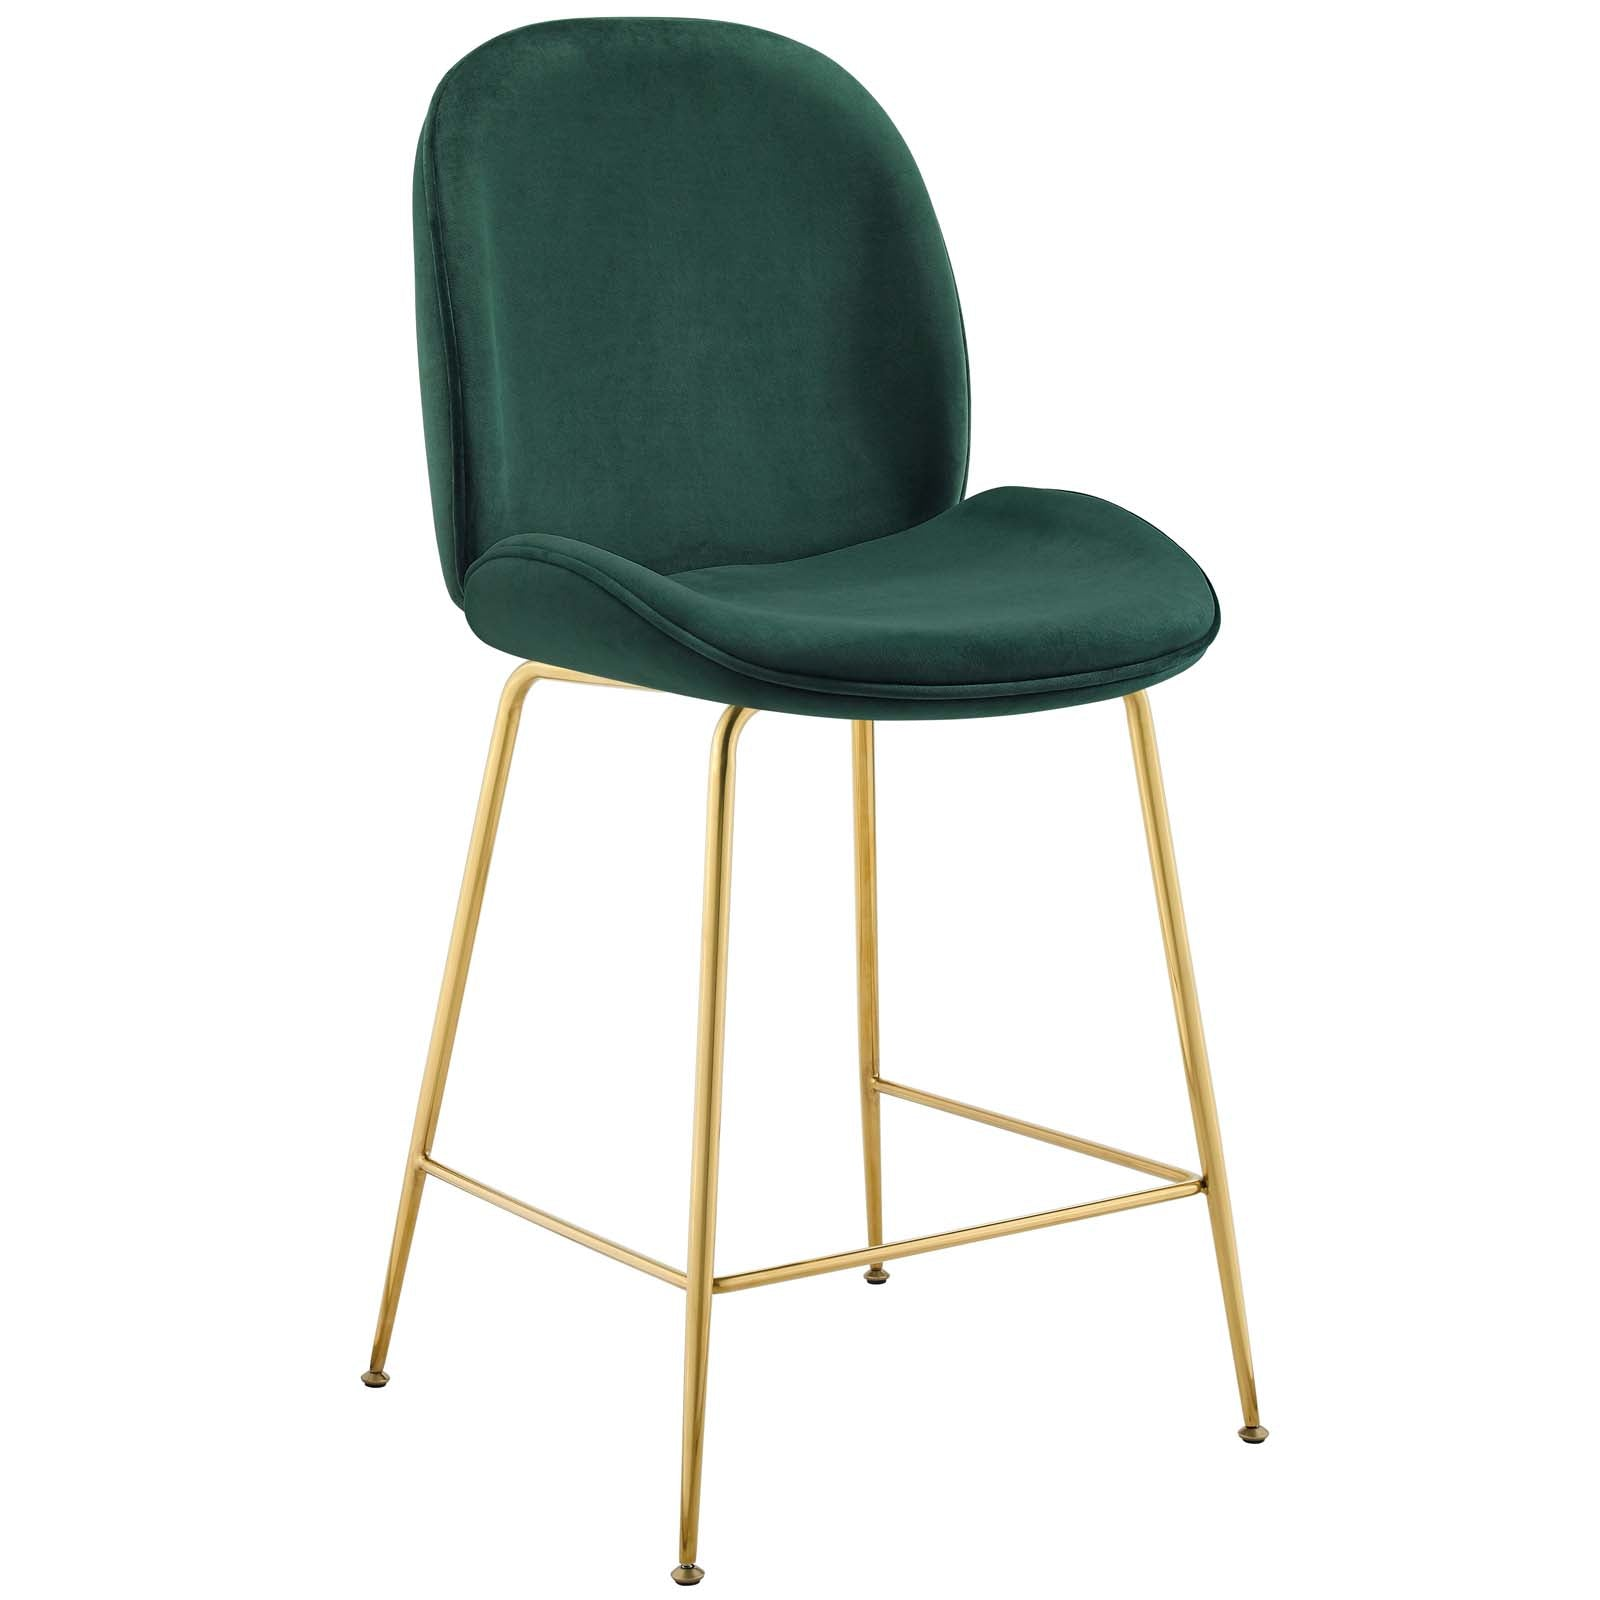 Magnificent Modway Counter Chairs On Sale Eei 3549 Grn Scoop Gold Stainless Steel Leg Performance Velvet Counter Stool Only Only 220 55 At Contemporary Gmtry Best Dining Table And Chair Ideas Images Gmtryco